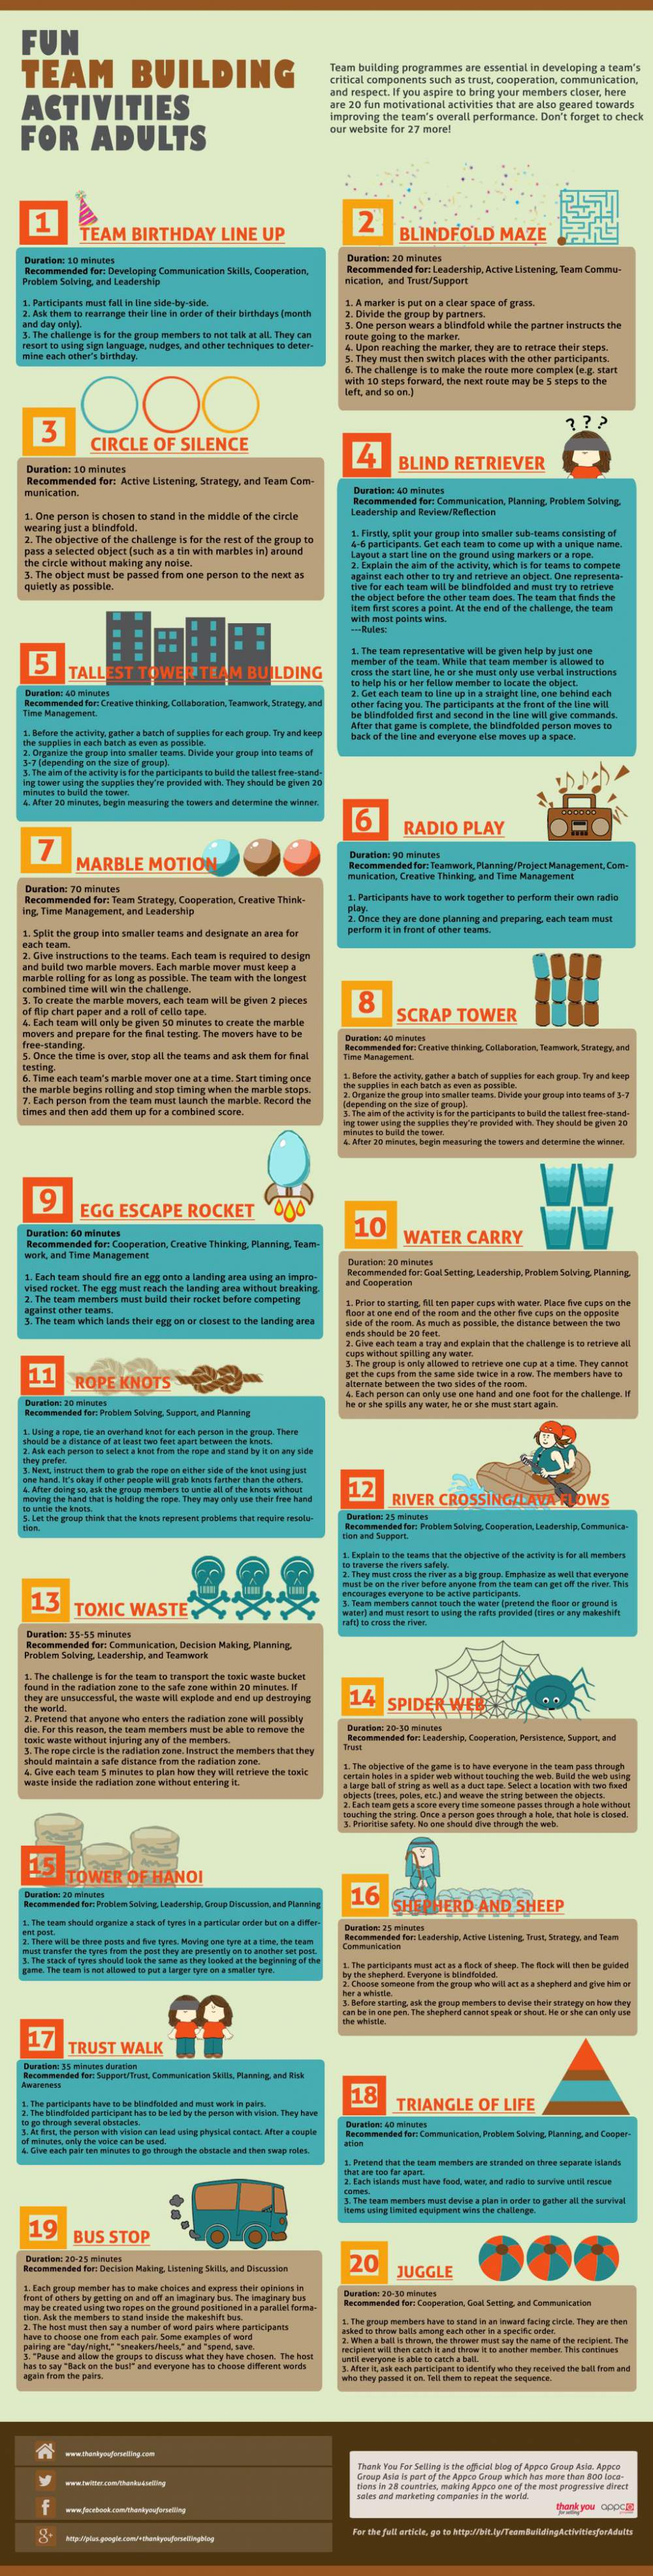 Fun icebreaker games for adults at work